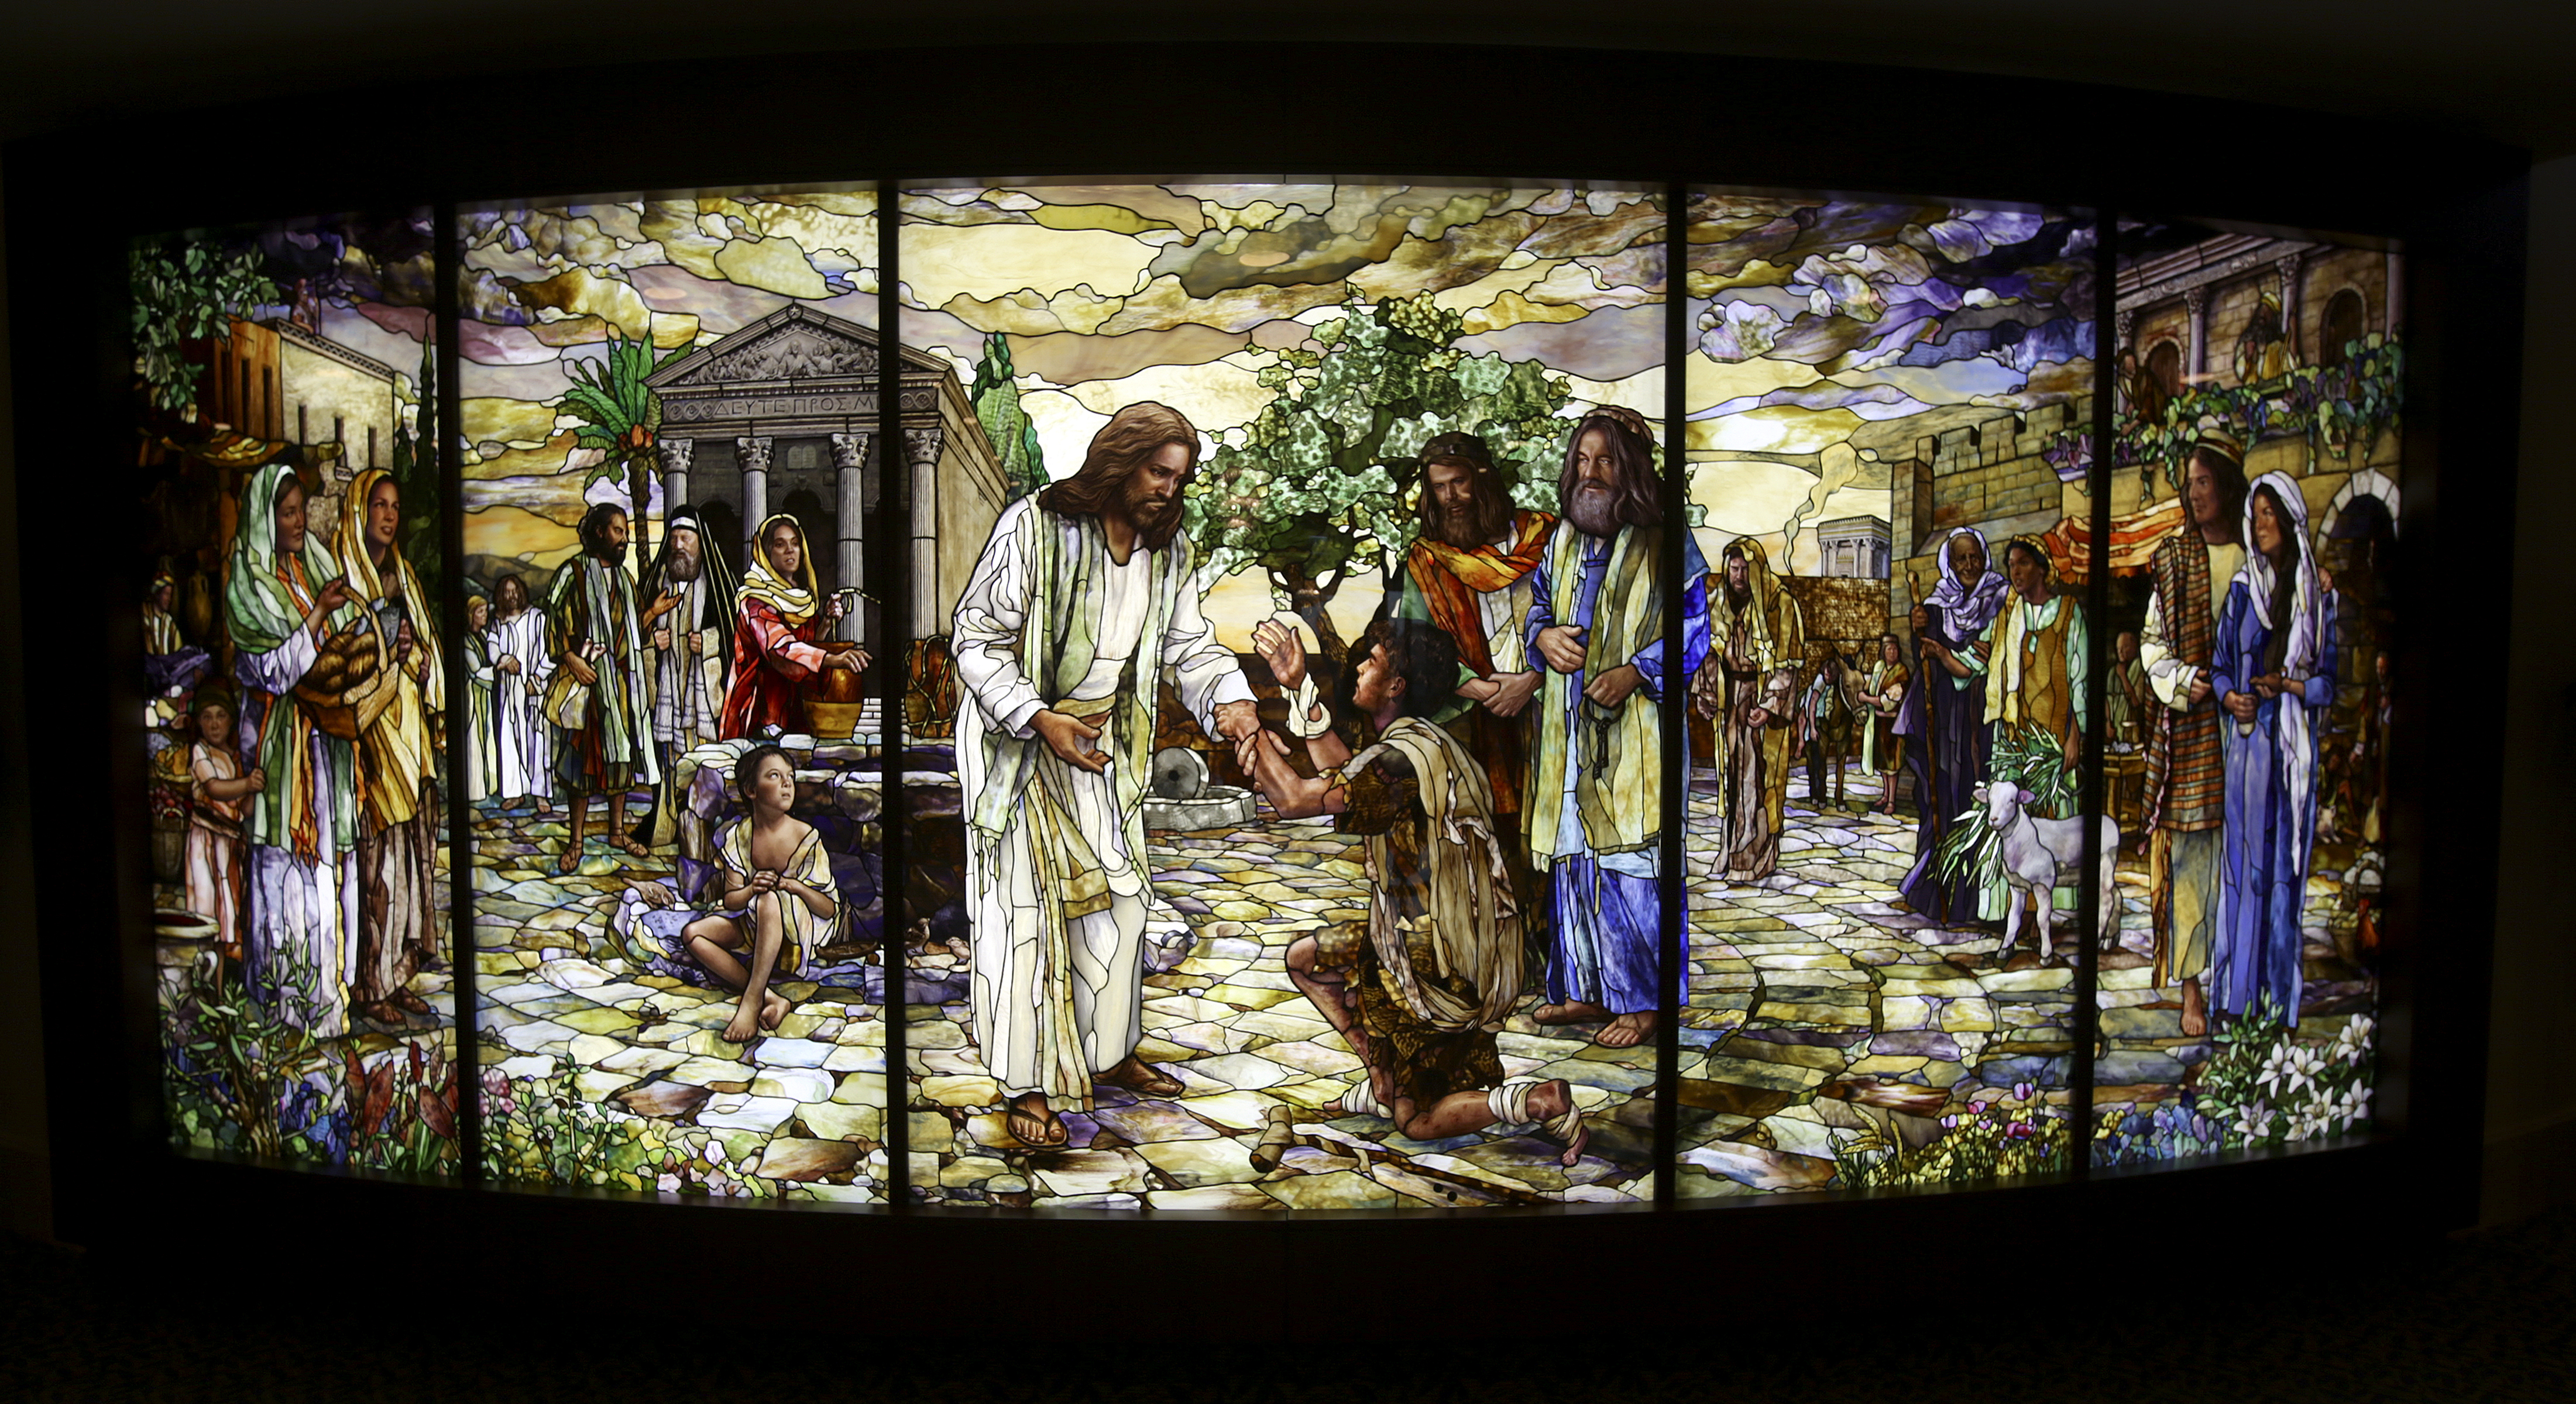 Thomas Holdman's stained glass mural is on display in the Visitors' Center for the Rome Temple in Rome, Italy, on Friday, Nov. 16, 2018.